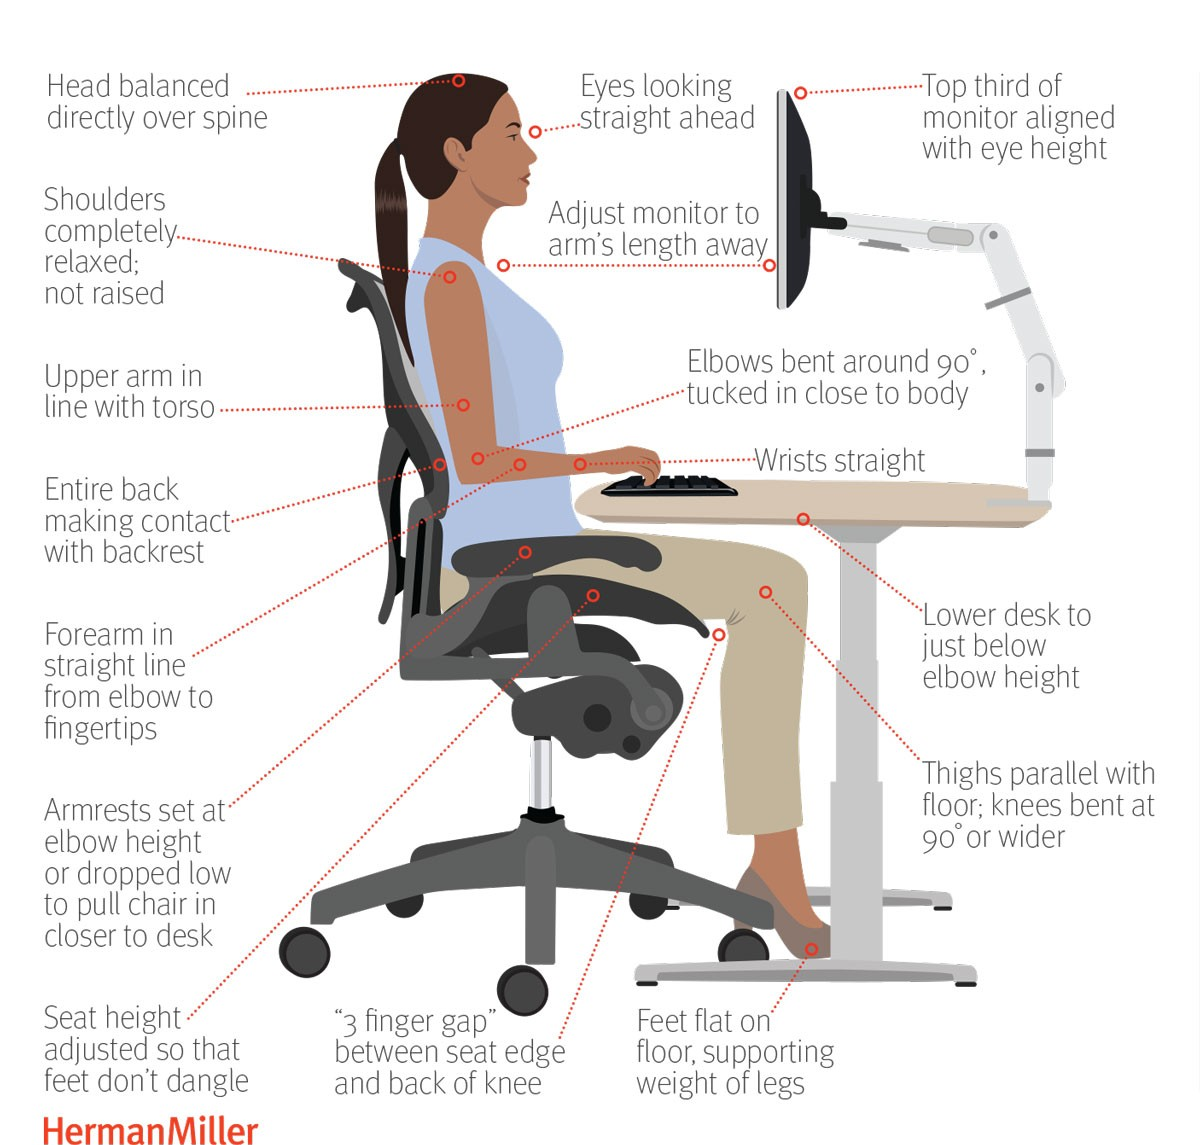 GRAPHIC COURTESY OF HERMAN MILLER